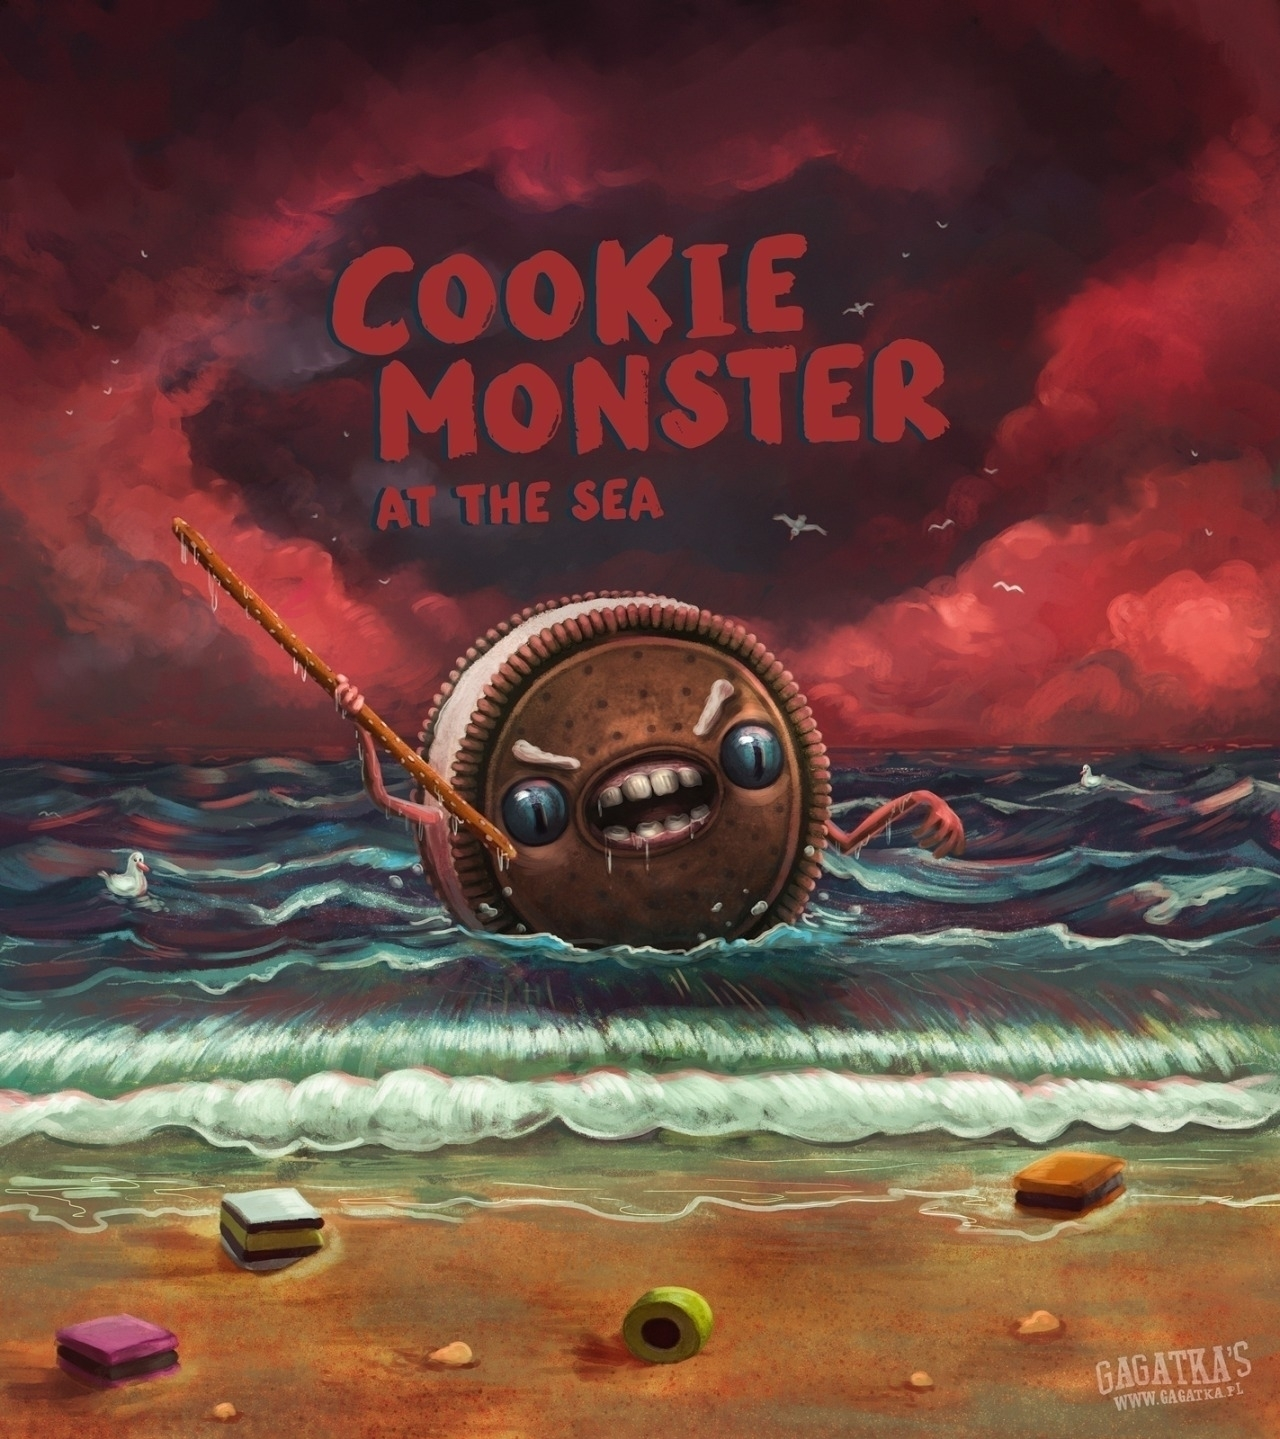 Cookie Monster sea bad! beware - gagatka | ello